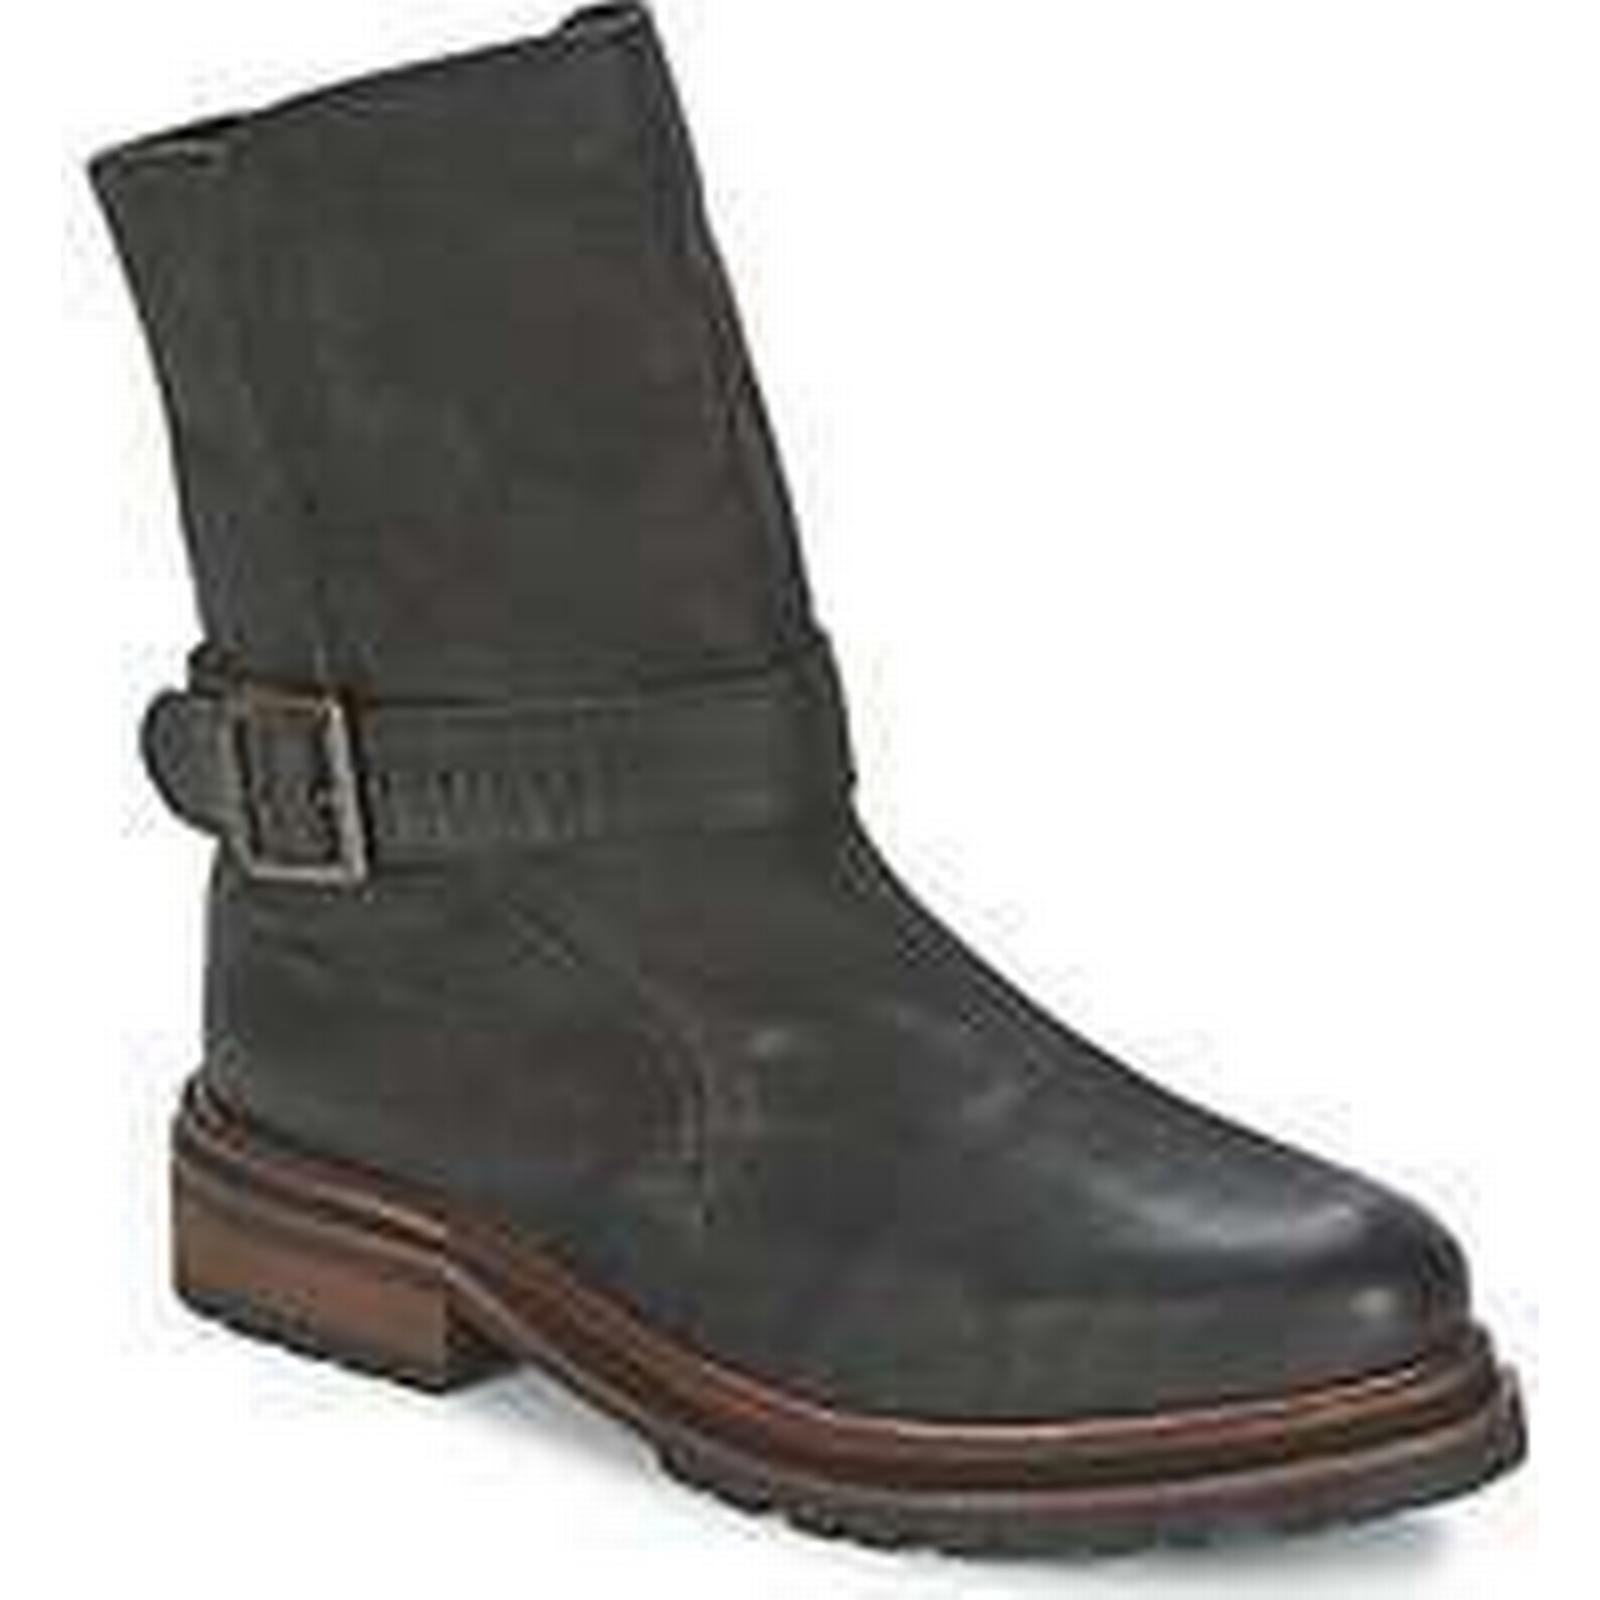 Spartoo.co.uk Hudson TATHAM women's in Low Ankle Boots in women's Black 2ada79